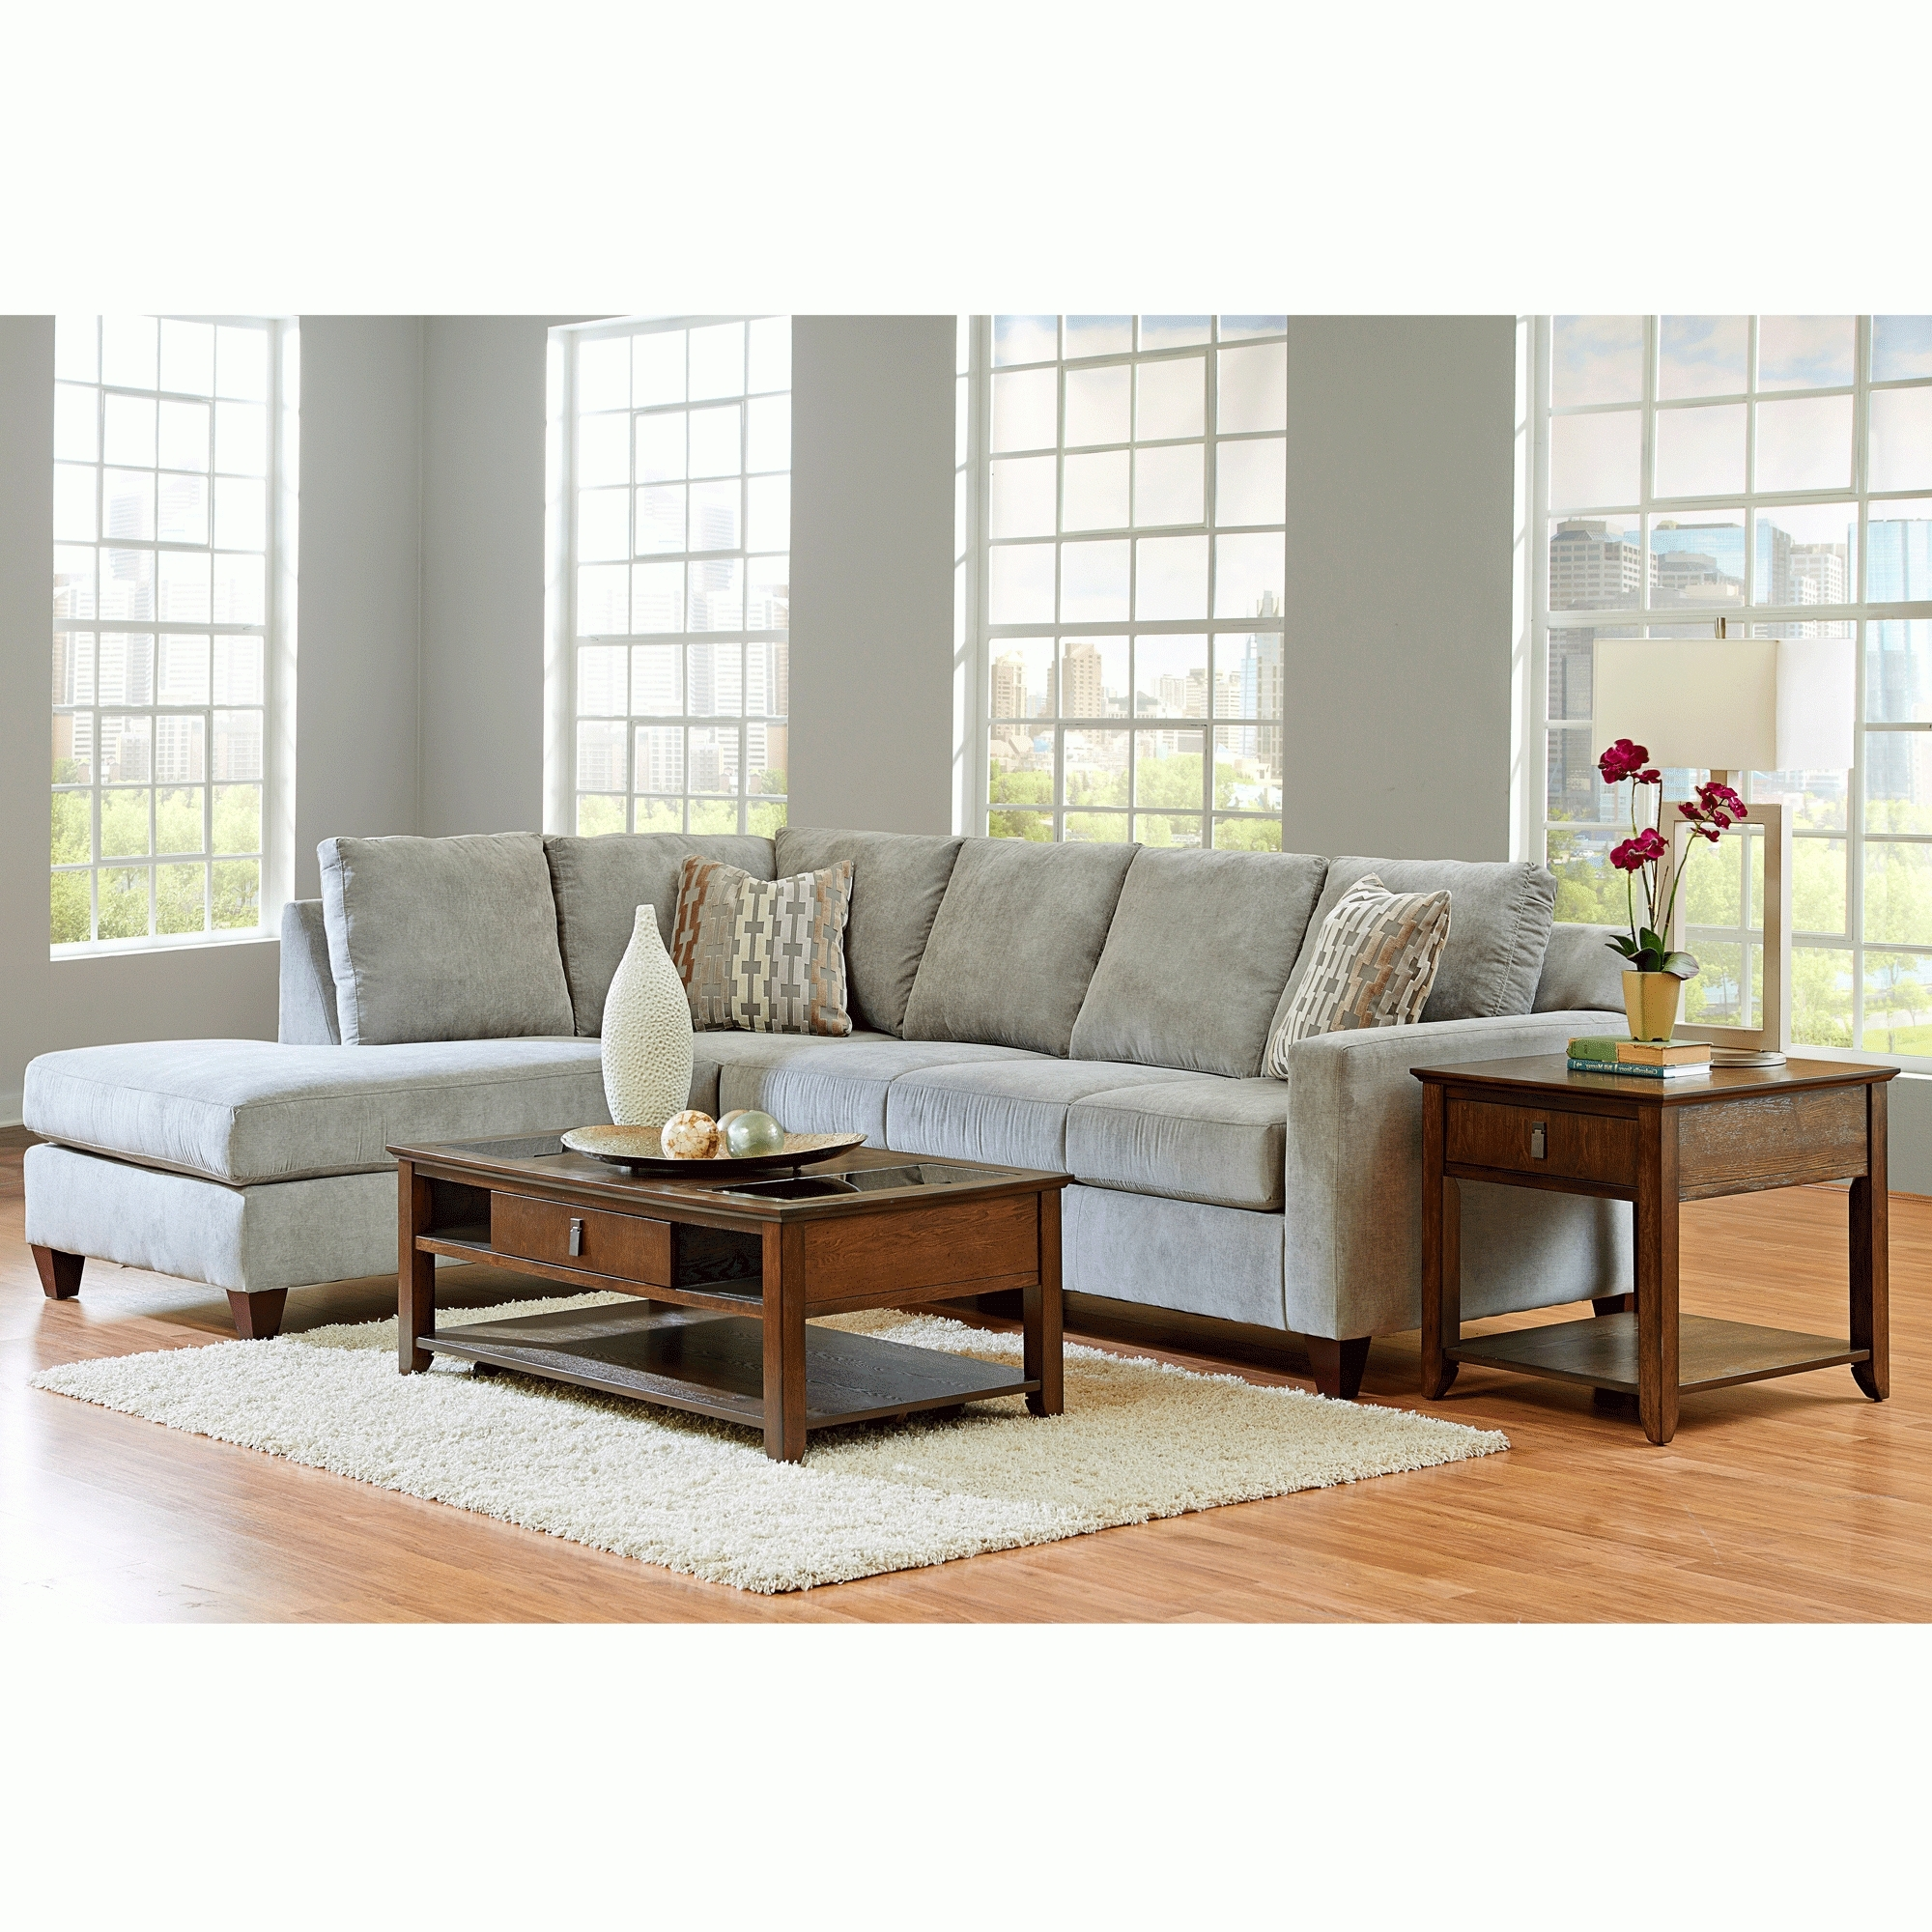 Famous Nashua Nh Sectional Sofas With Regard To Sectional Sofas (View 5 of 20)